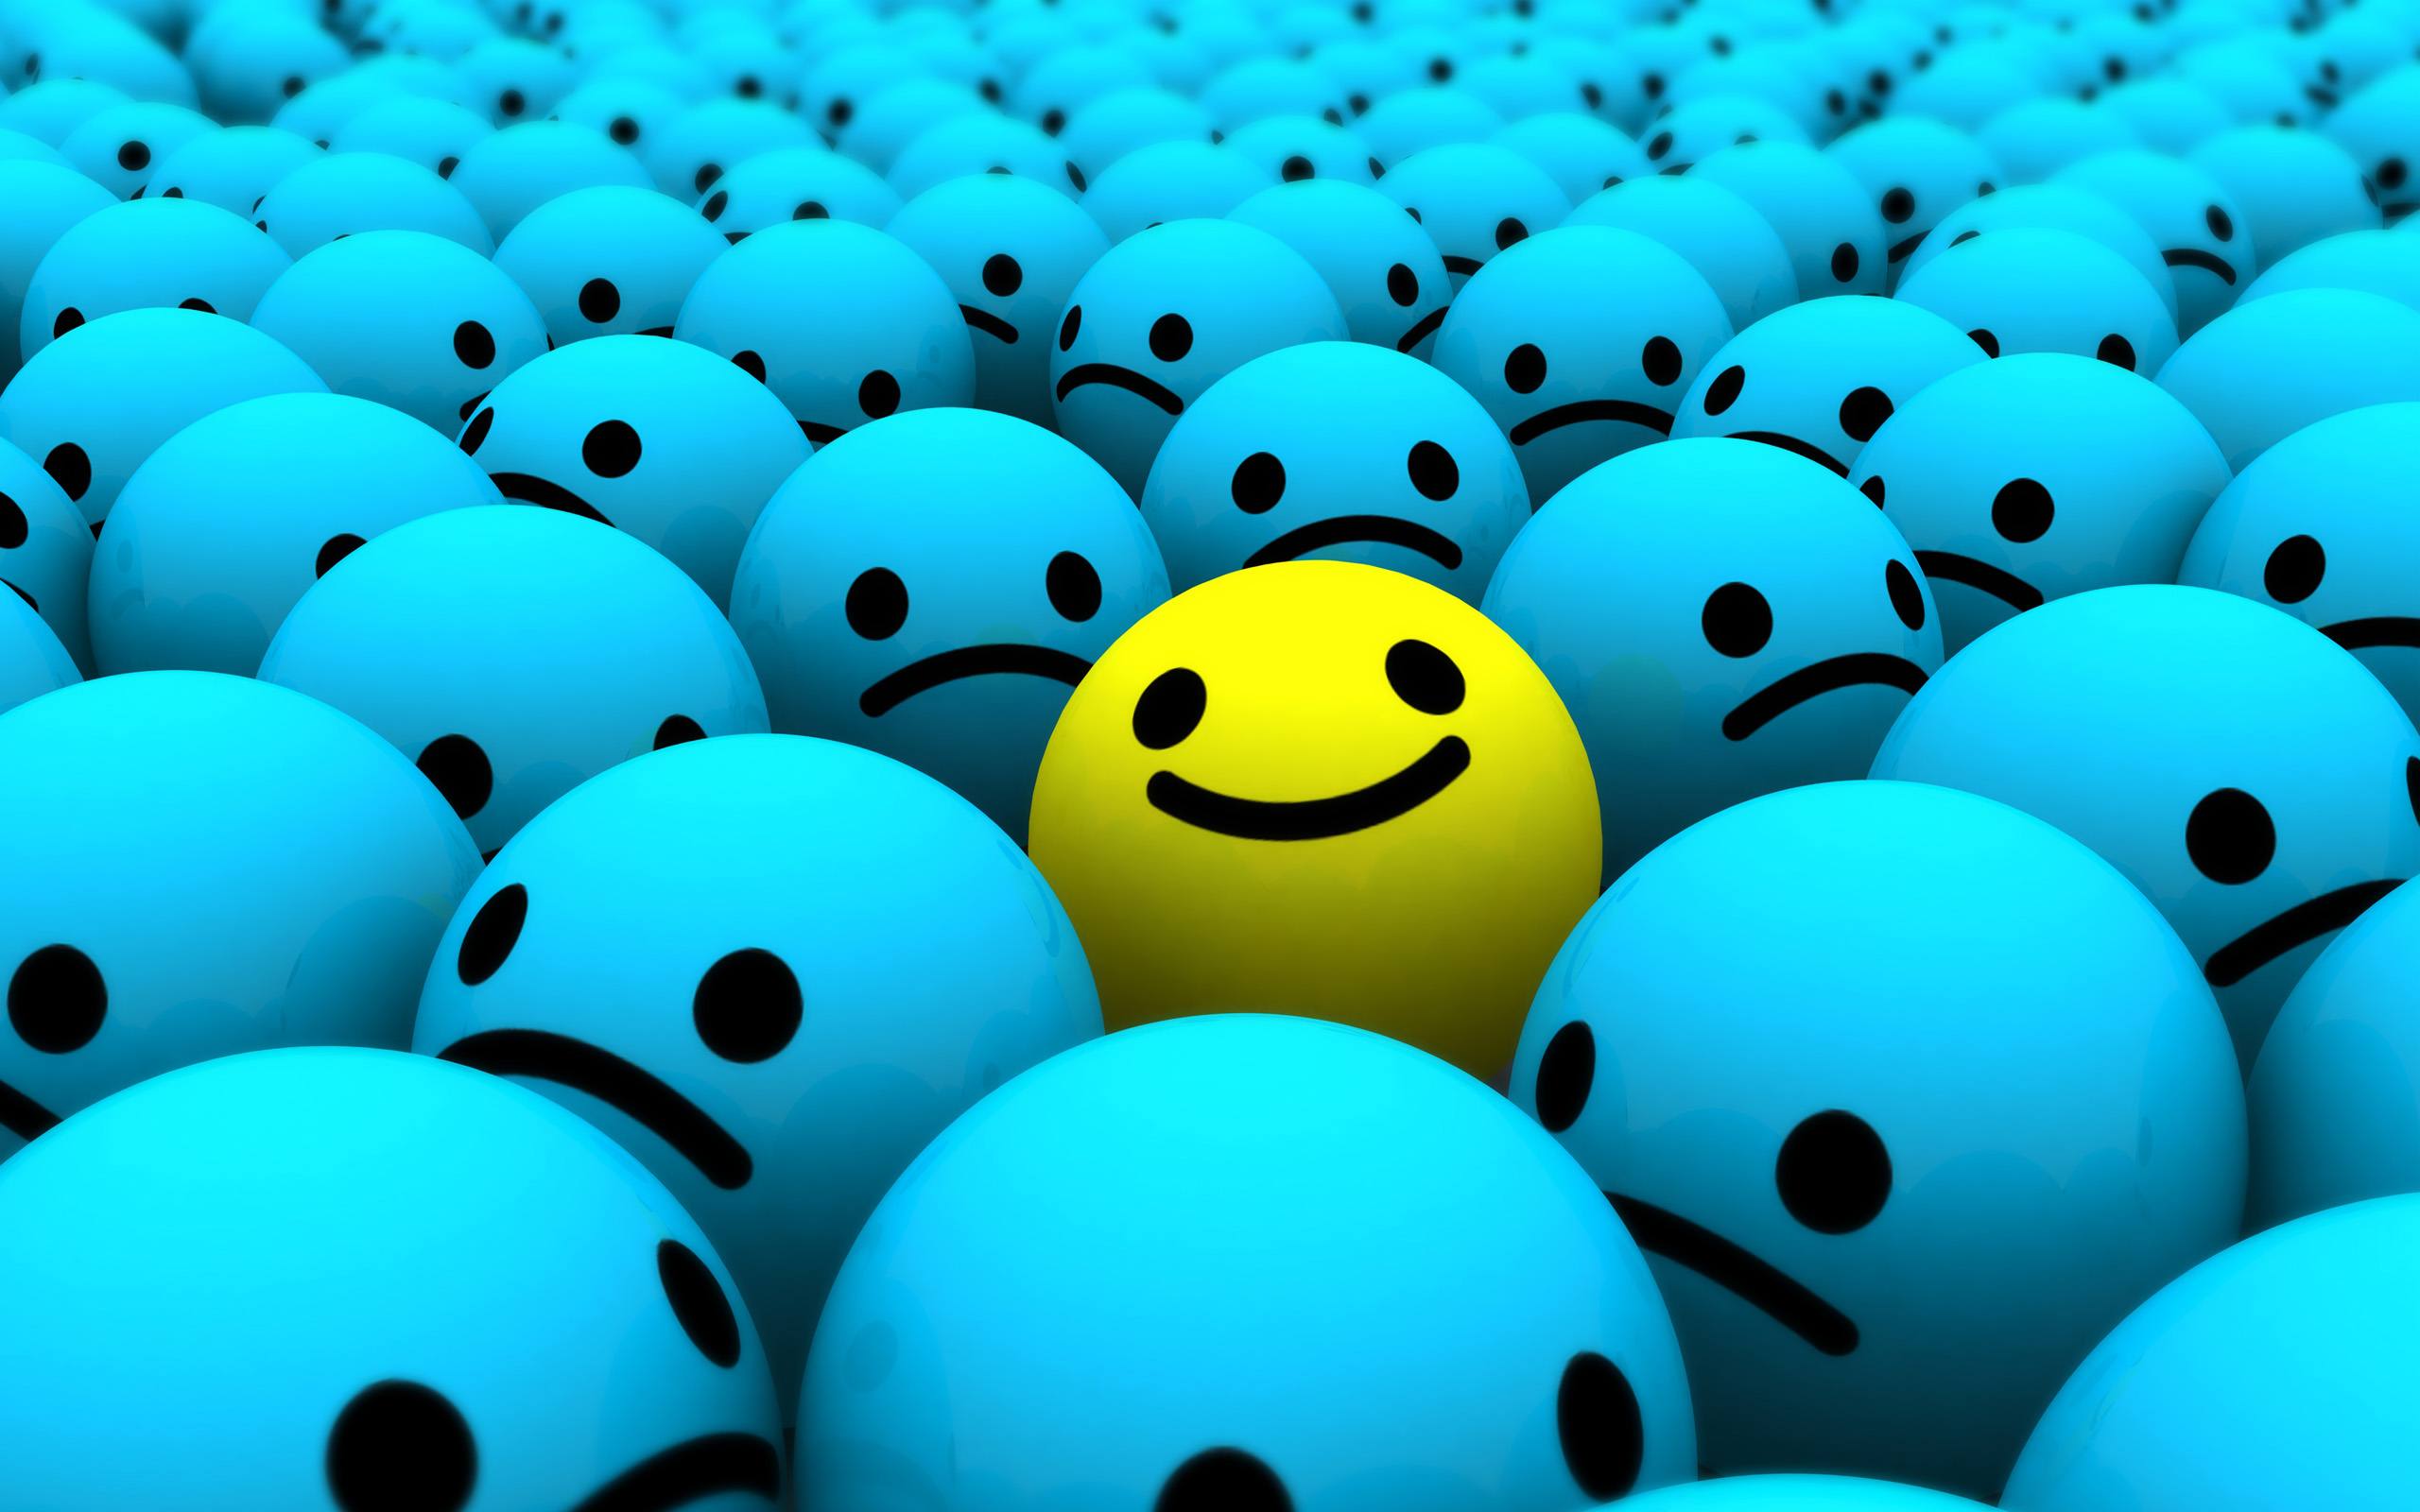 Smiley Faces Wallpaper Smiley Faces Wallpaper 2560x1600 px Free Download - Wallpaperest